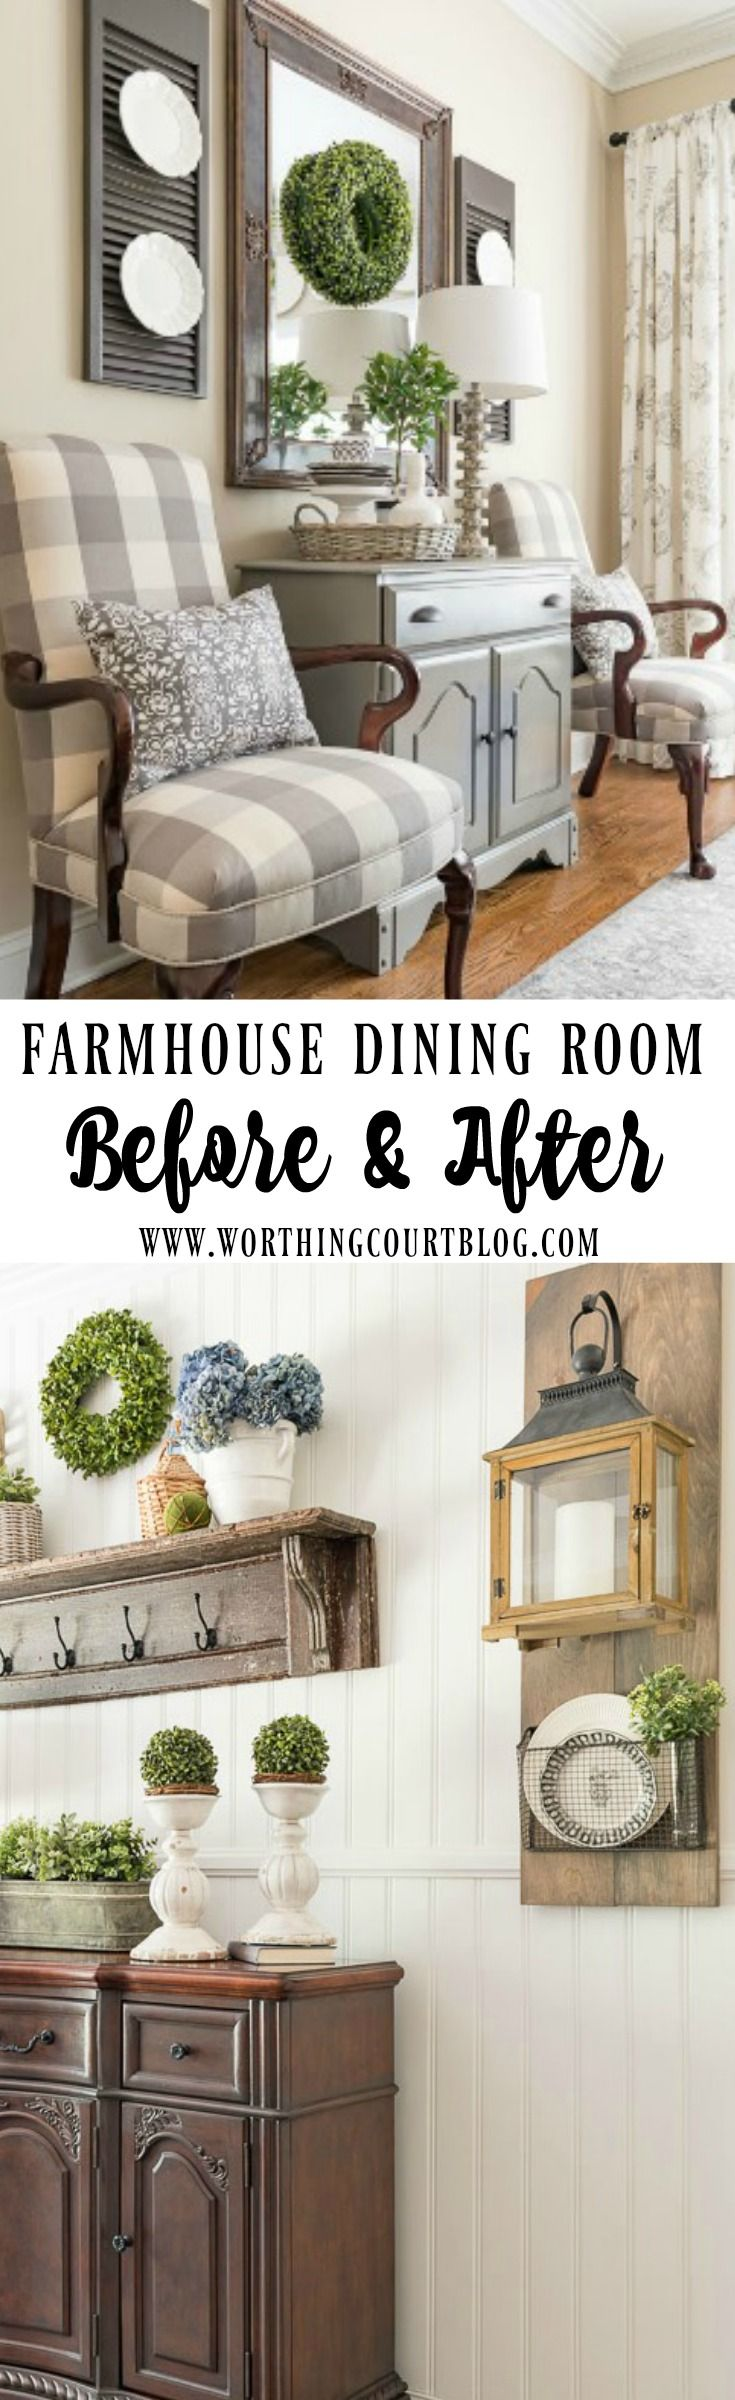 Best 25 farmhouse dining rooms ideas on pinterest for Dining room wall decor ideas pinterest